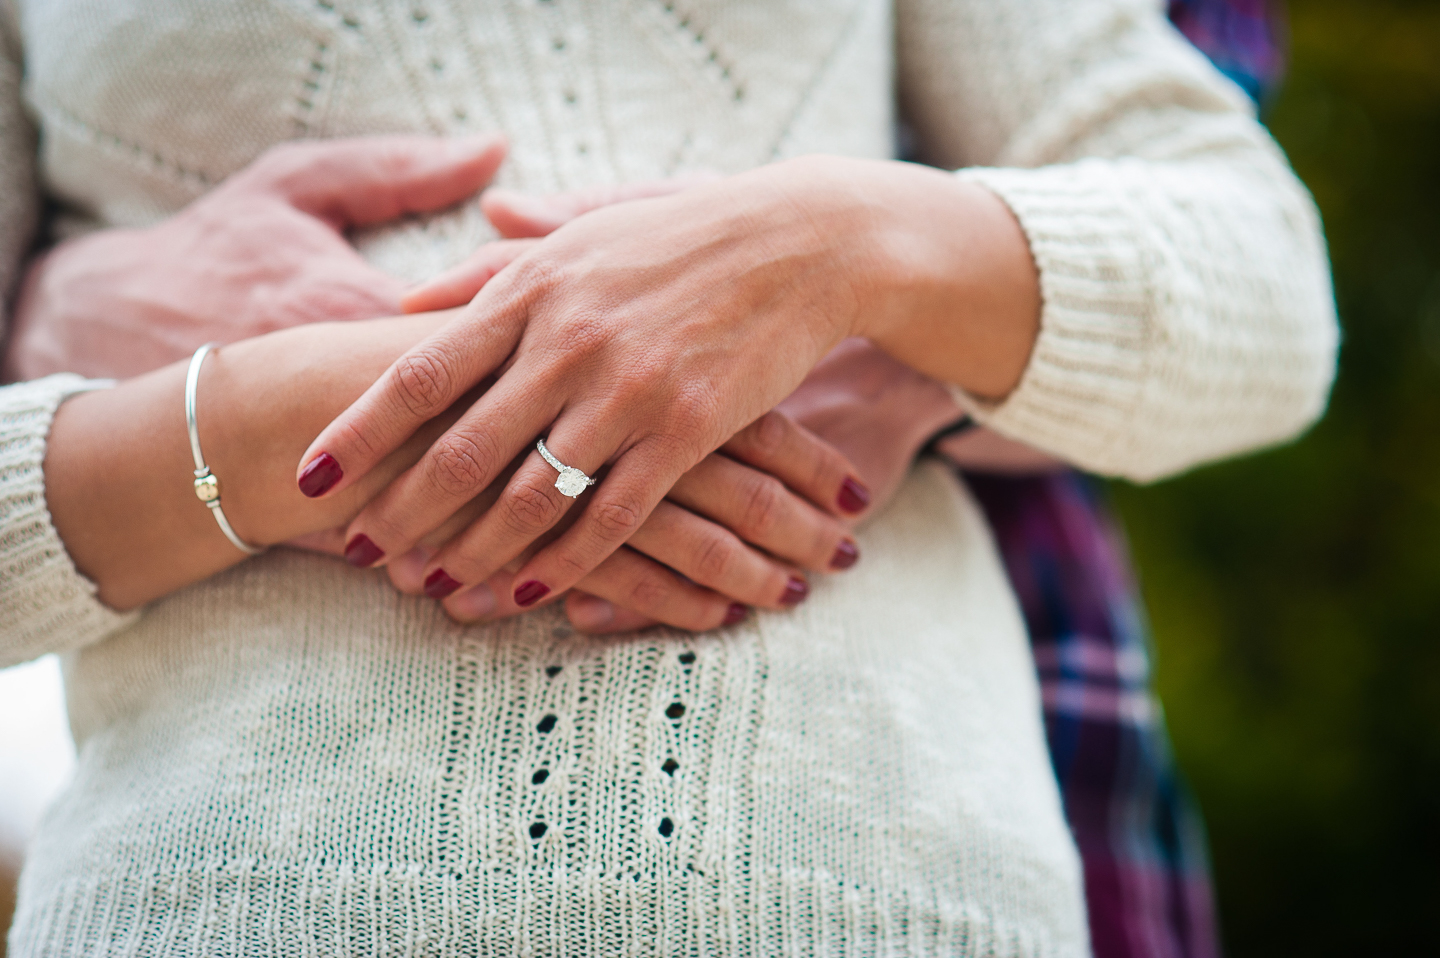 beautiful engagement ring against white sweater